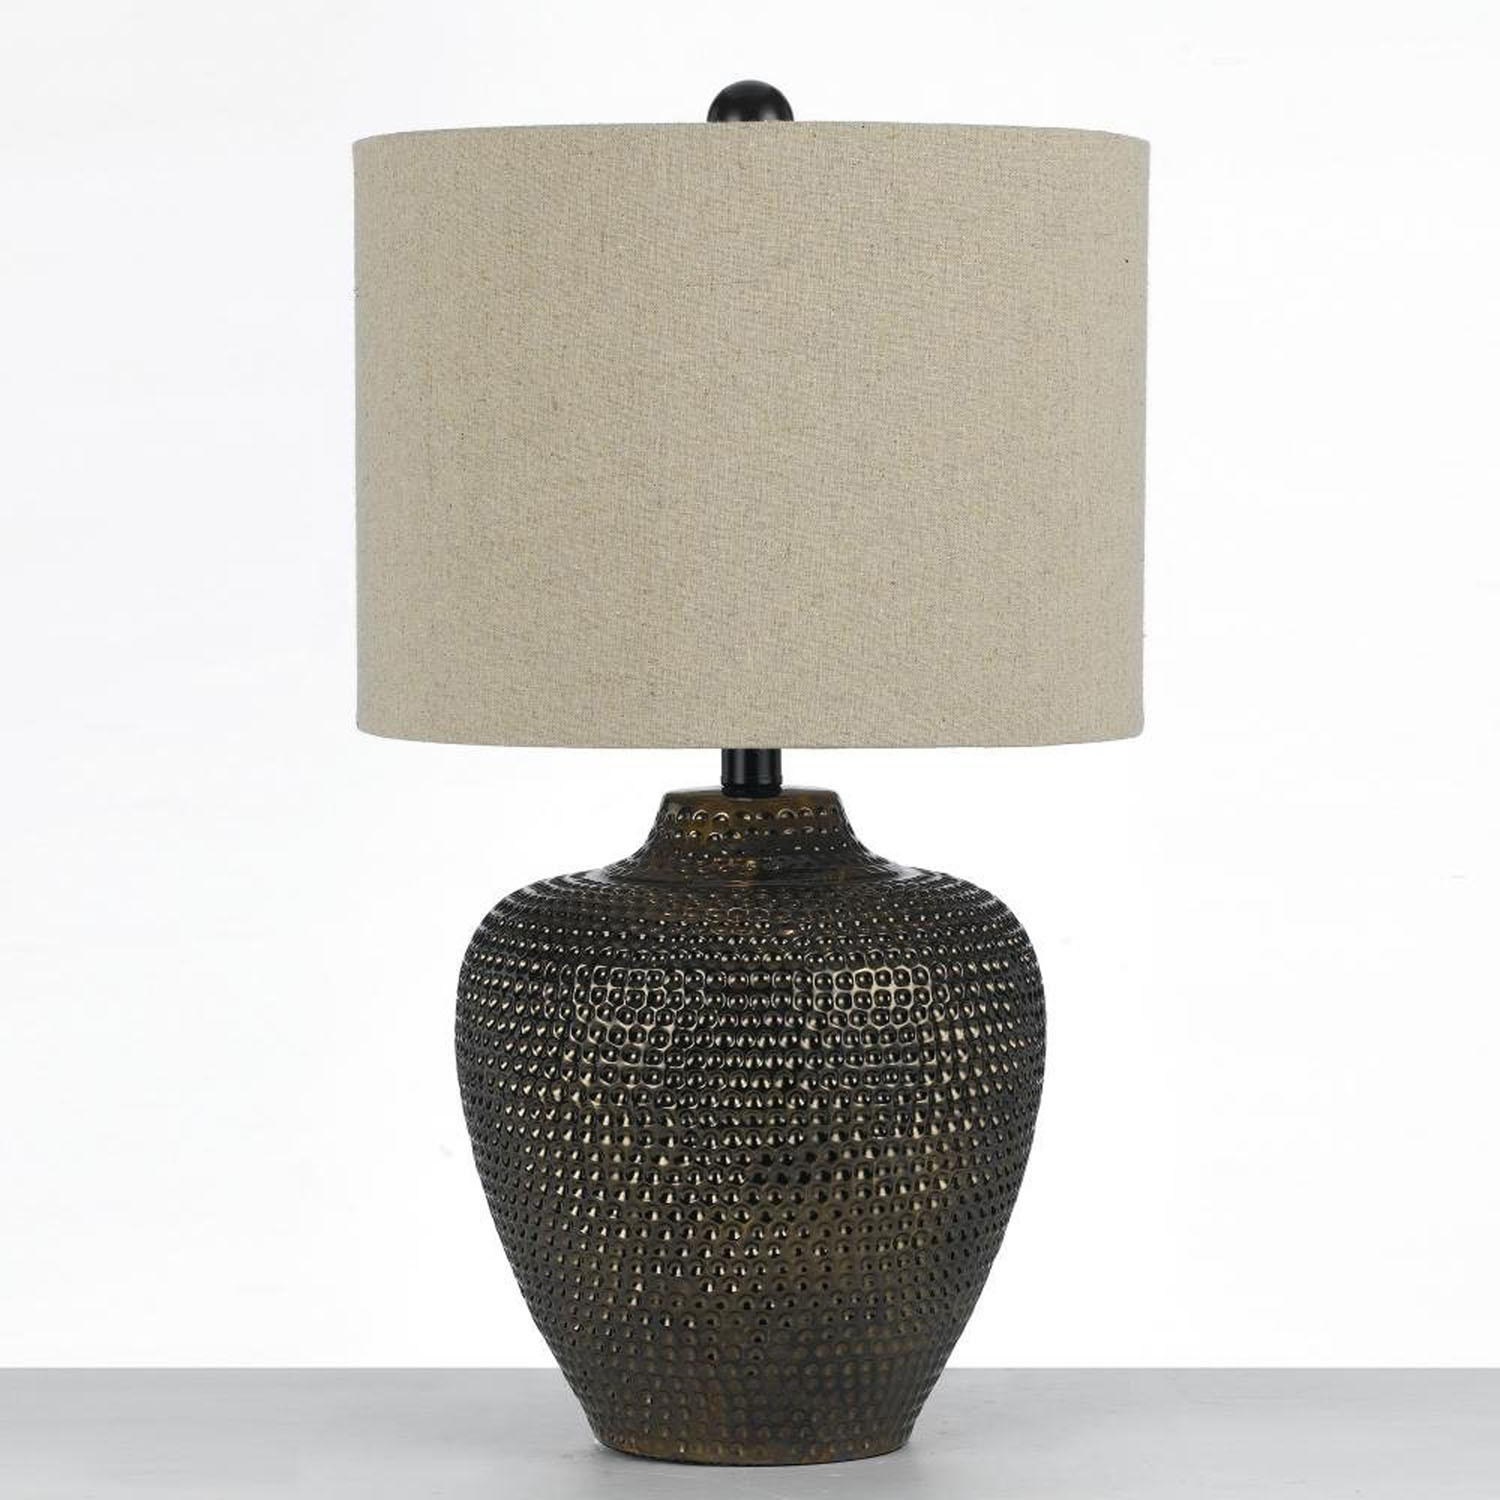 Danbury Ceramic Table Lamp Brown 8559 Tl